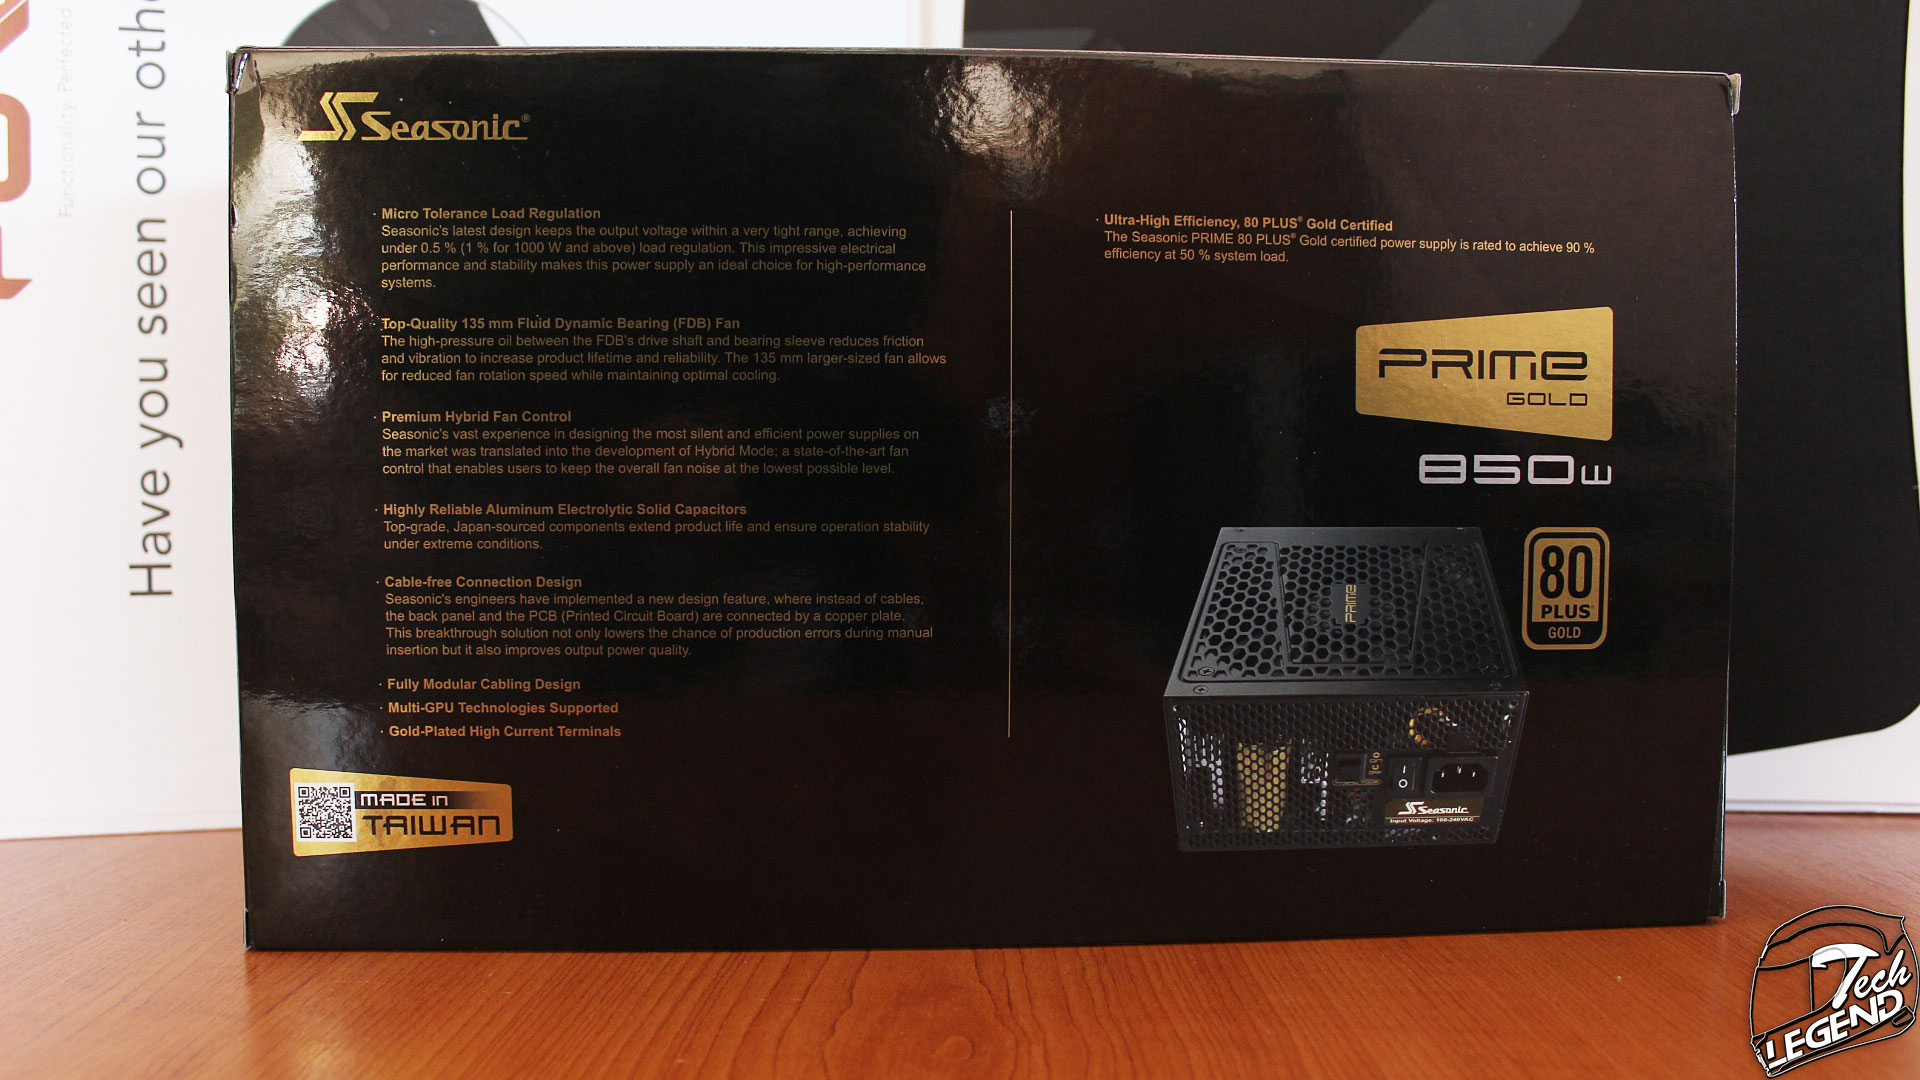 Seasonic Prime 850w Gold Power Supply Review Modular Wiring Solutions Ltd The Is Packaged In A Textile Bag While Cables Are Sealed Plastic Bags These Inside Separate Cardboard Box